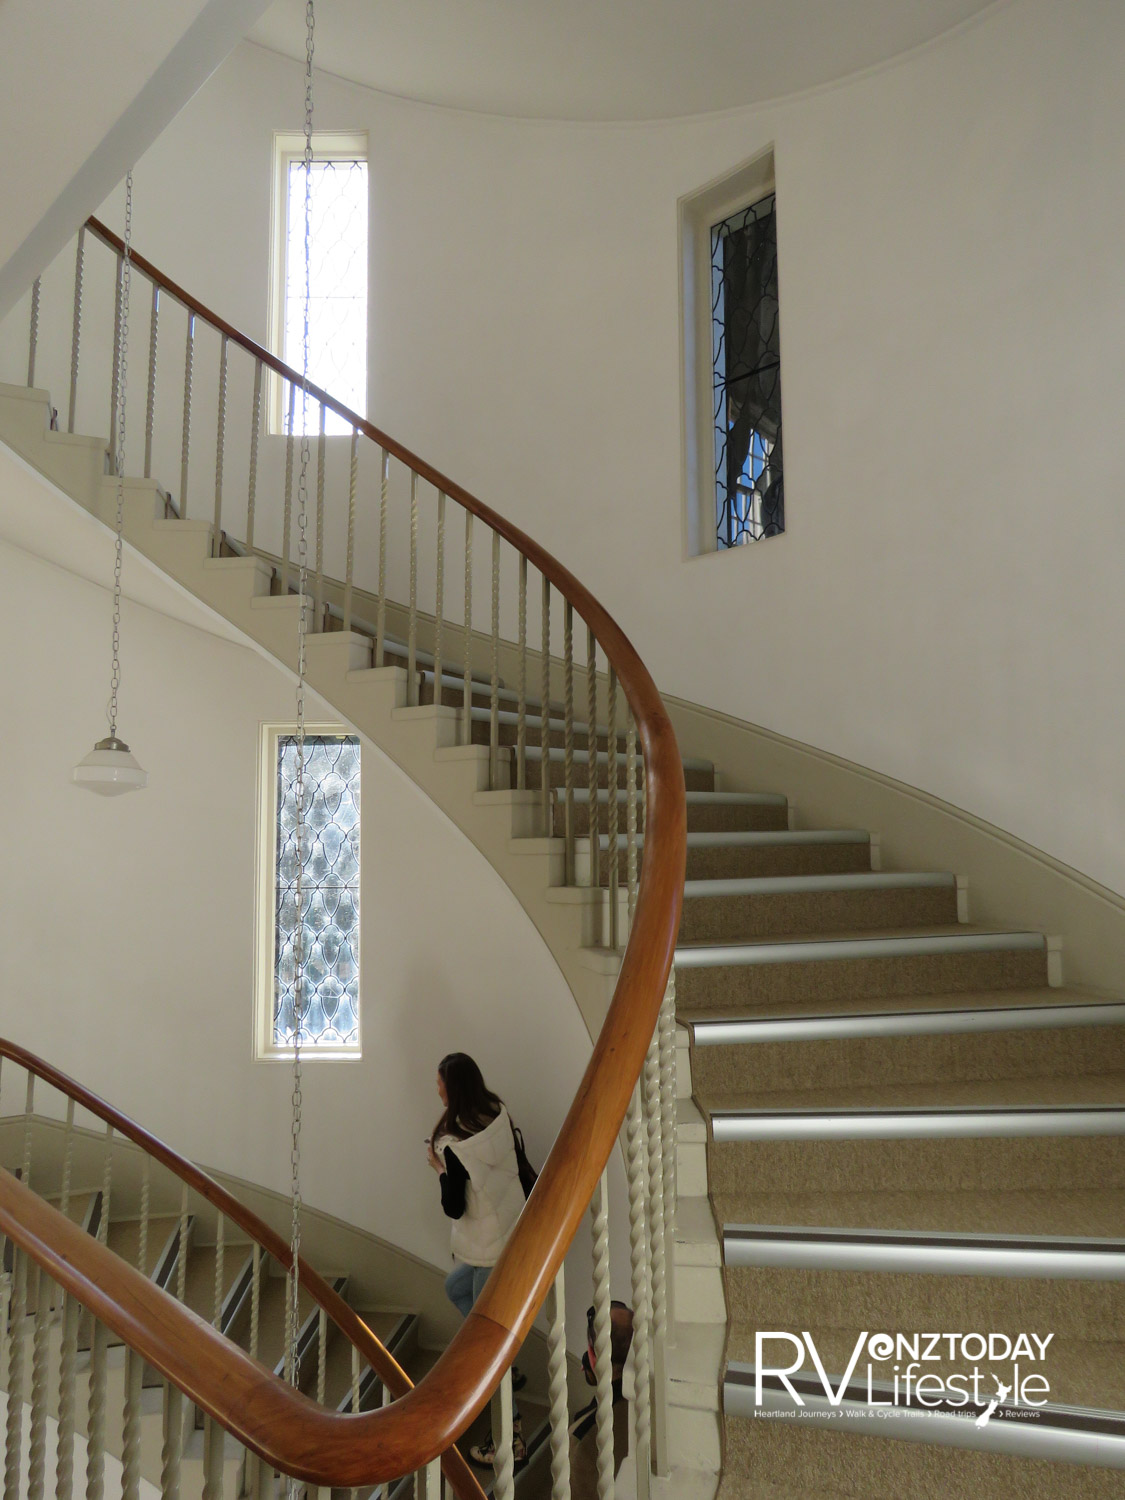 The graceful art deco Lopdell House staircase